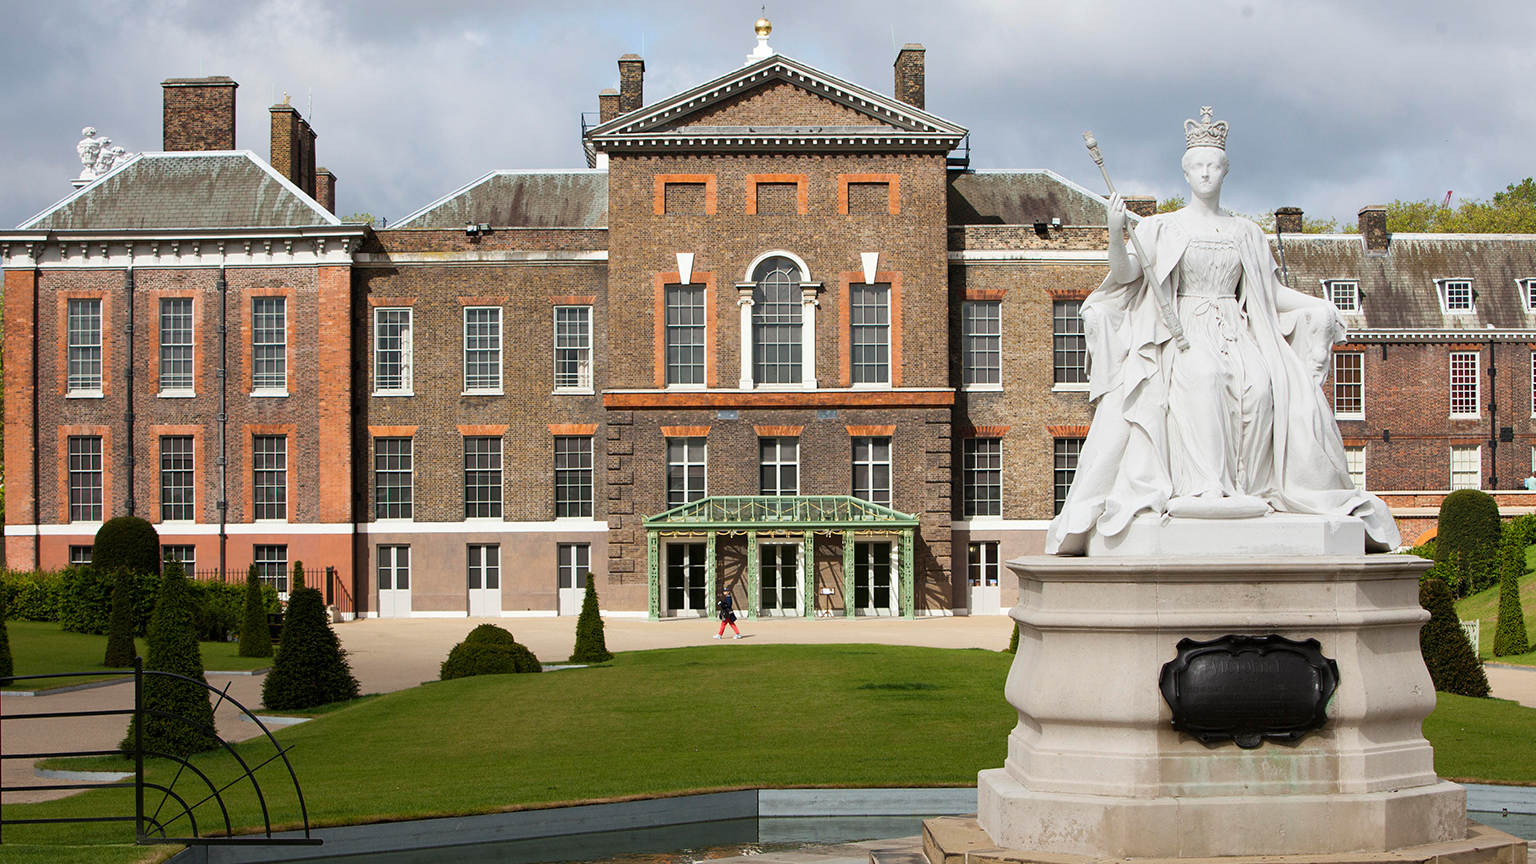 Charming Exterior Of Kensington Palace